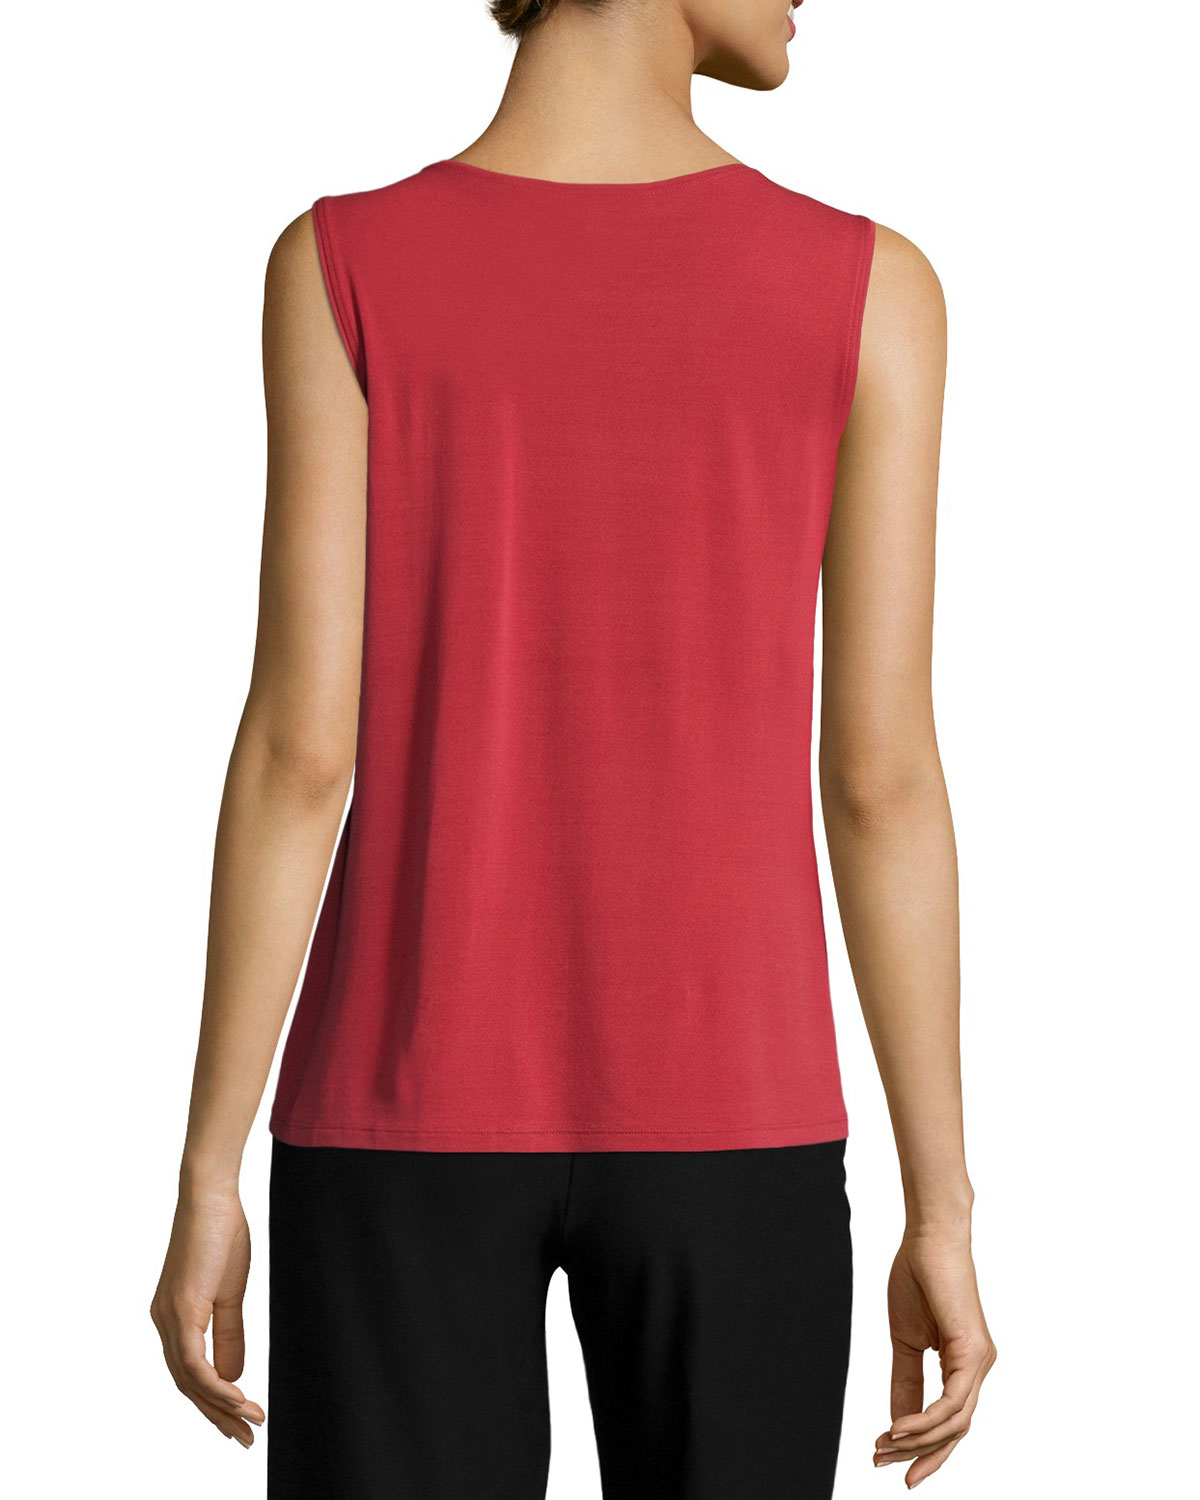 Find great deals on eBay for silk tank tops. Shop with confidence. Skip to main content. eBay: Womens Juniors J Crew Silk Tank Top Size 0 Red With Grapes and Strawberries. Summer Silk Tank Top Womens Lady Camisole Sleeveless Vest Slim Solid Blouse Tops. Brand New · .